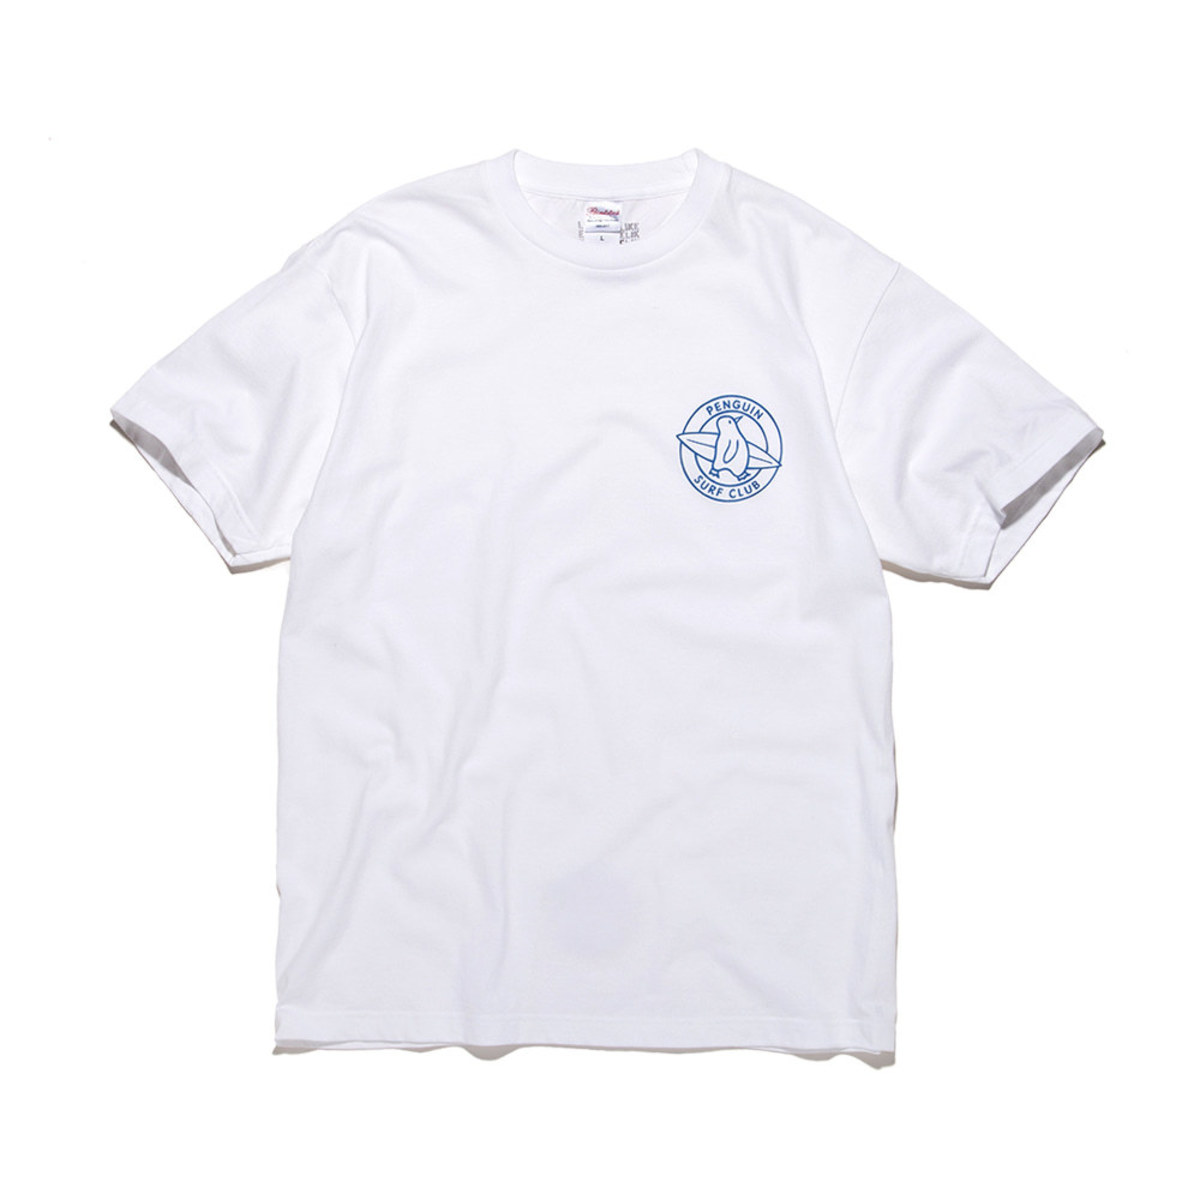 [BIG WAVE] PENGUIN SURF CLUB TEE 'WHITE'